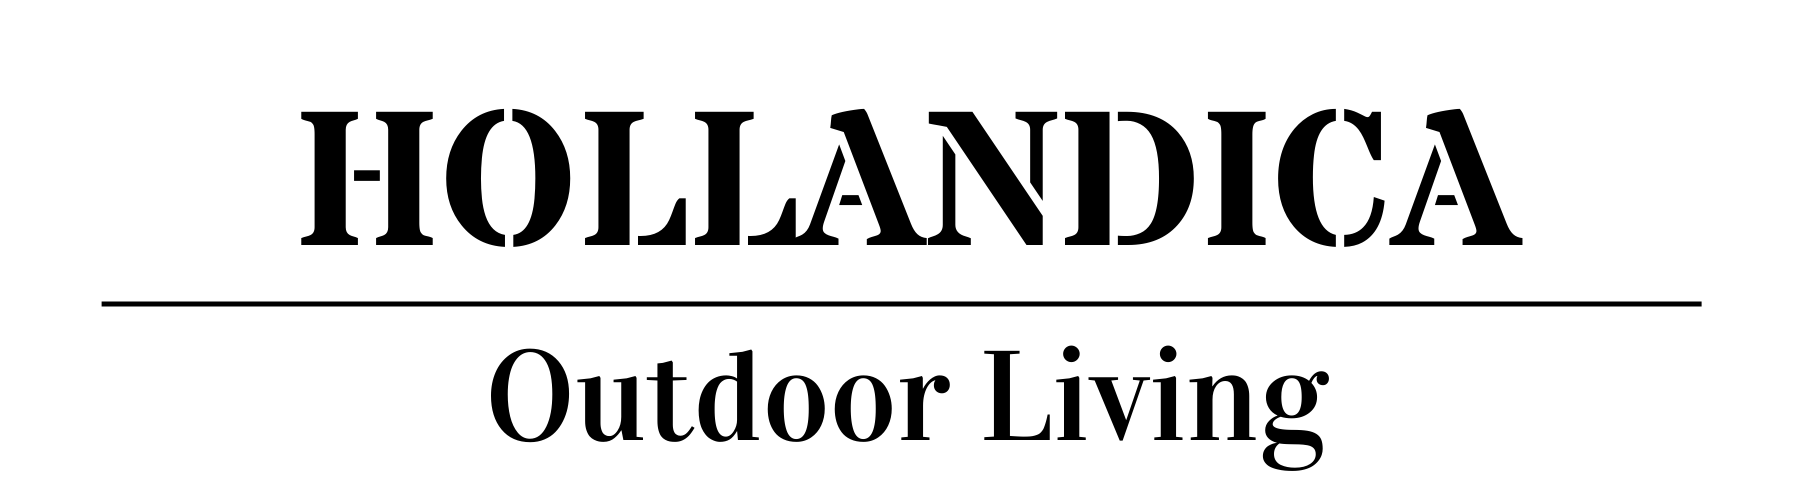 Hollandica Outdoorliving